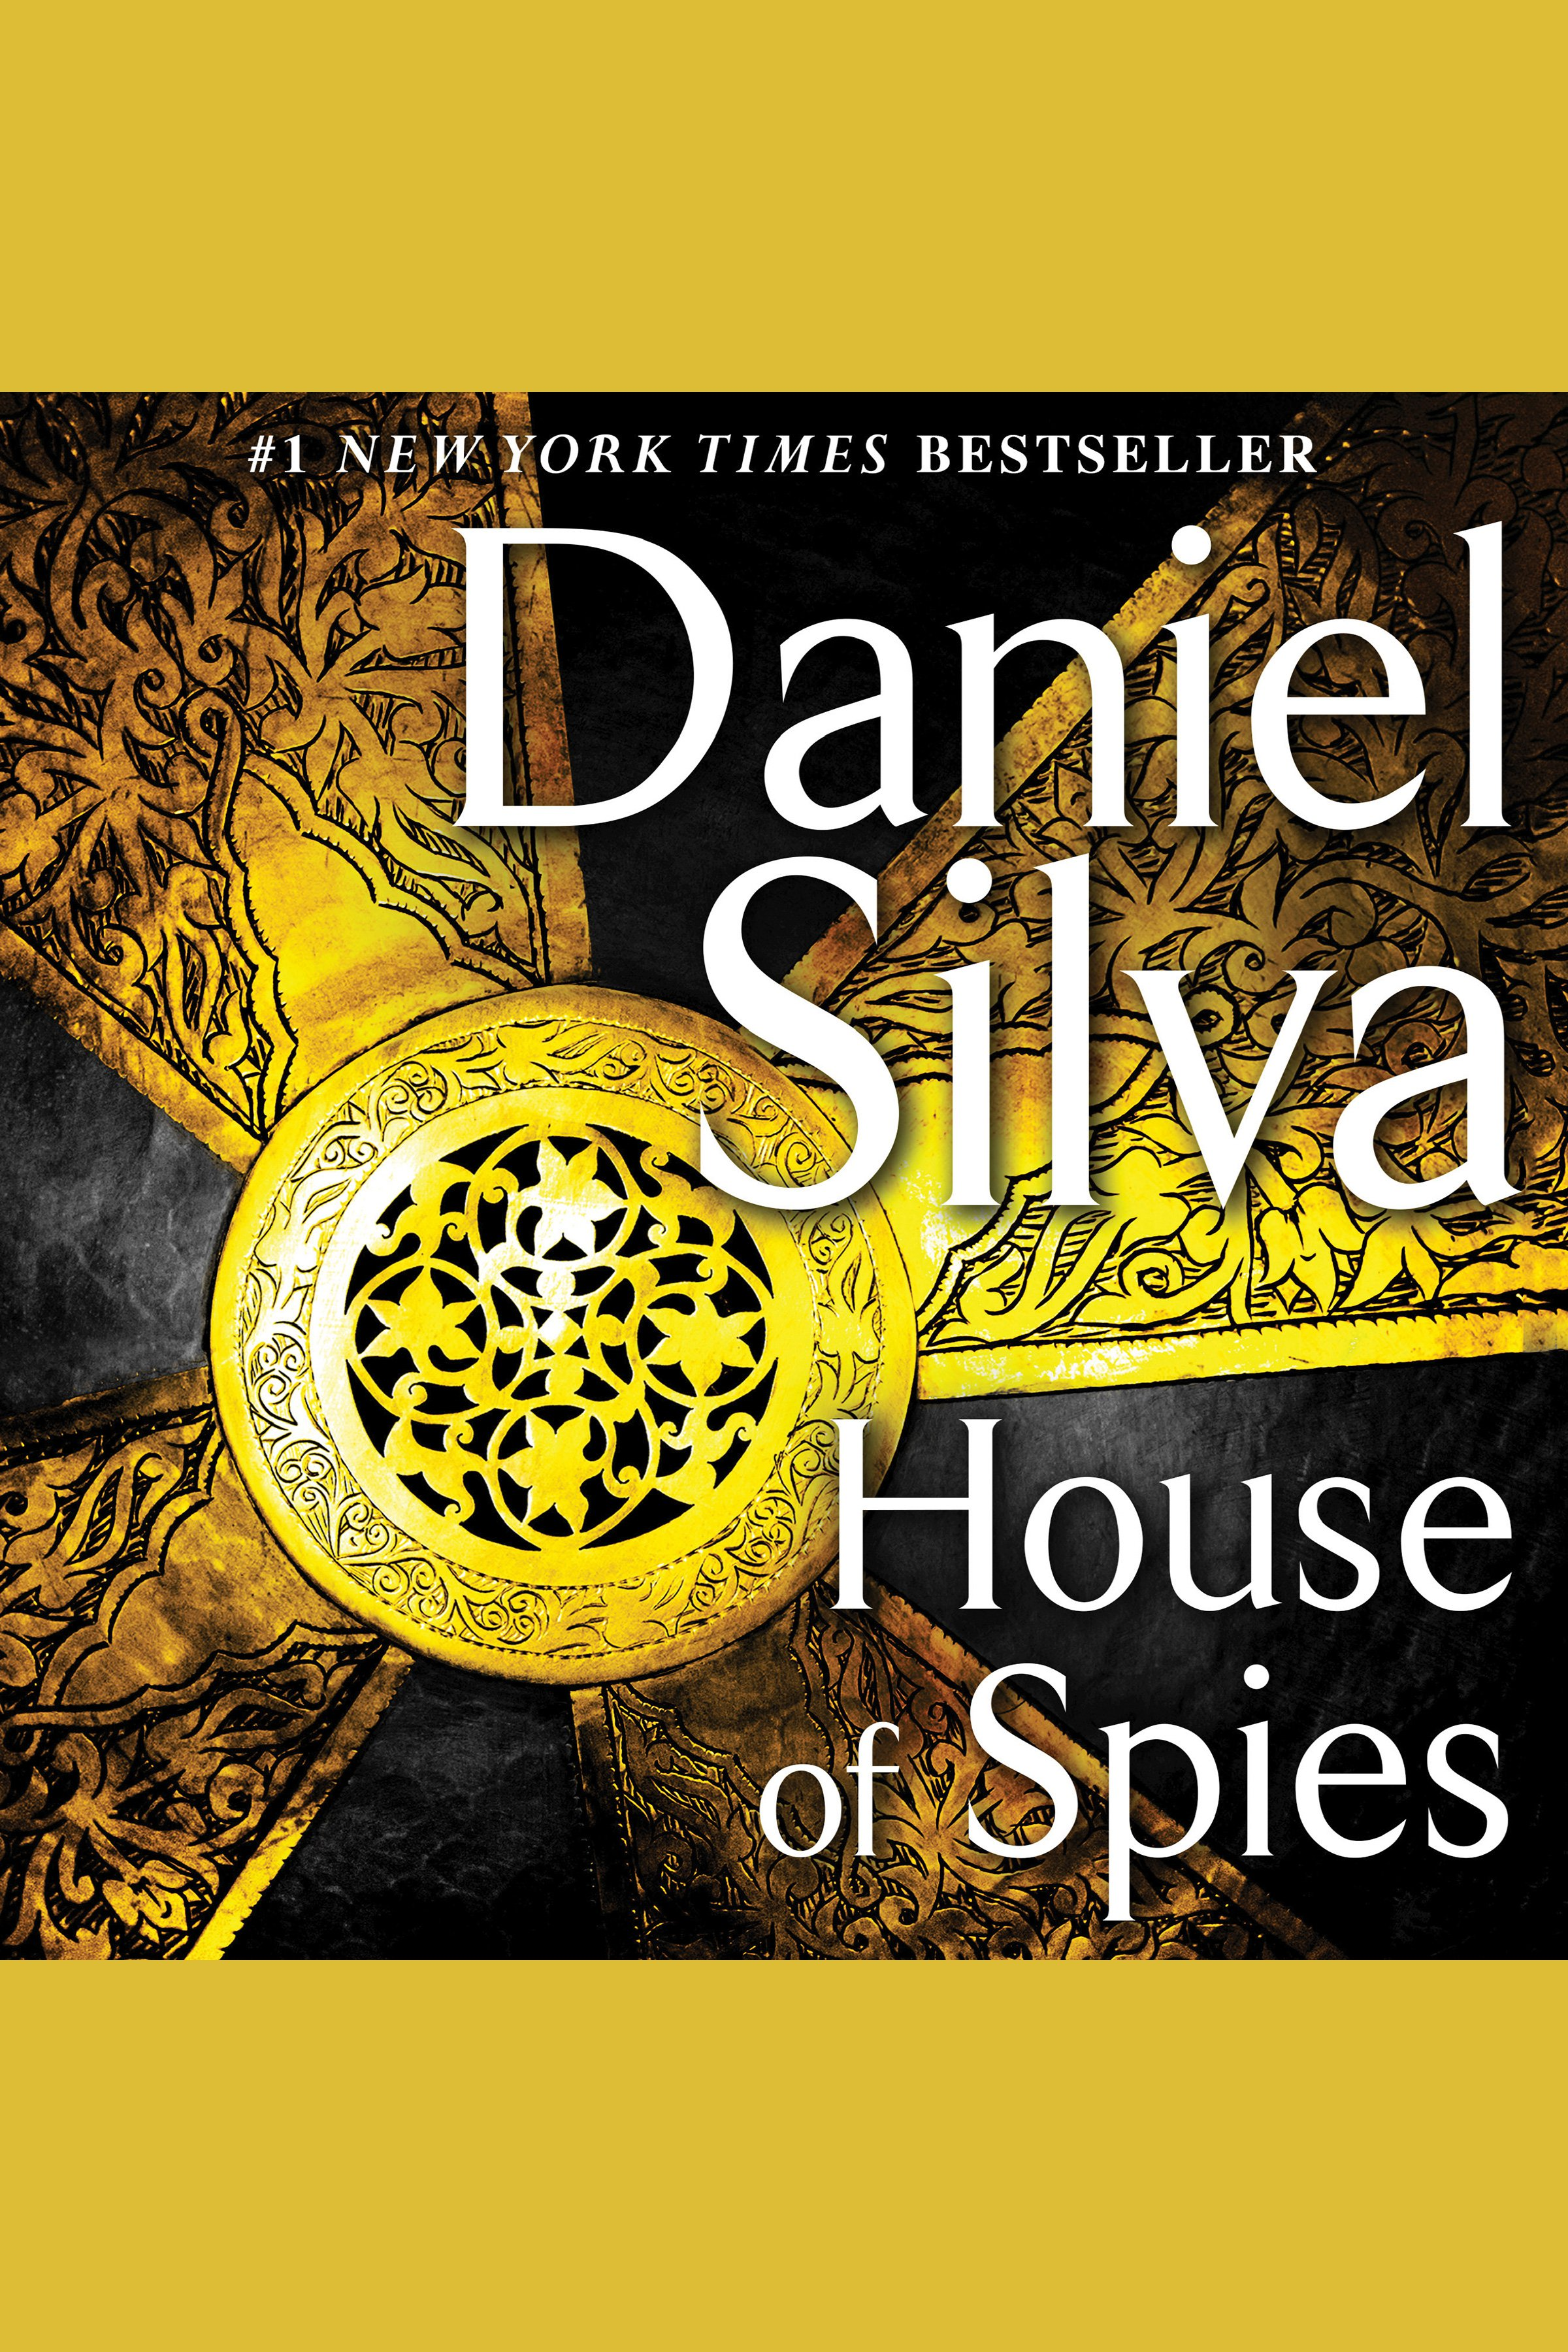 House of spies [AudioEbook]